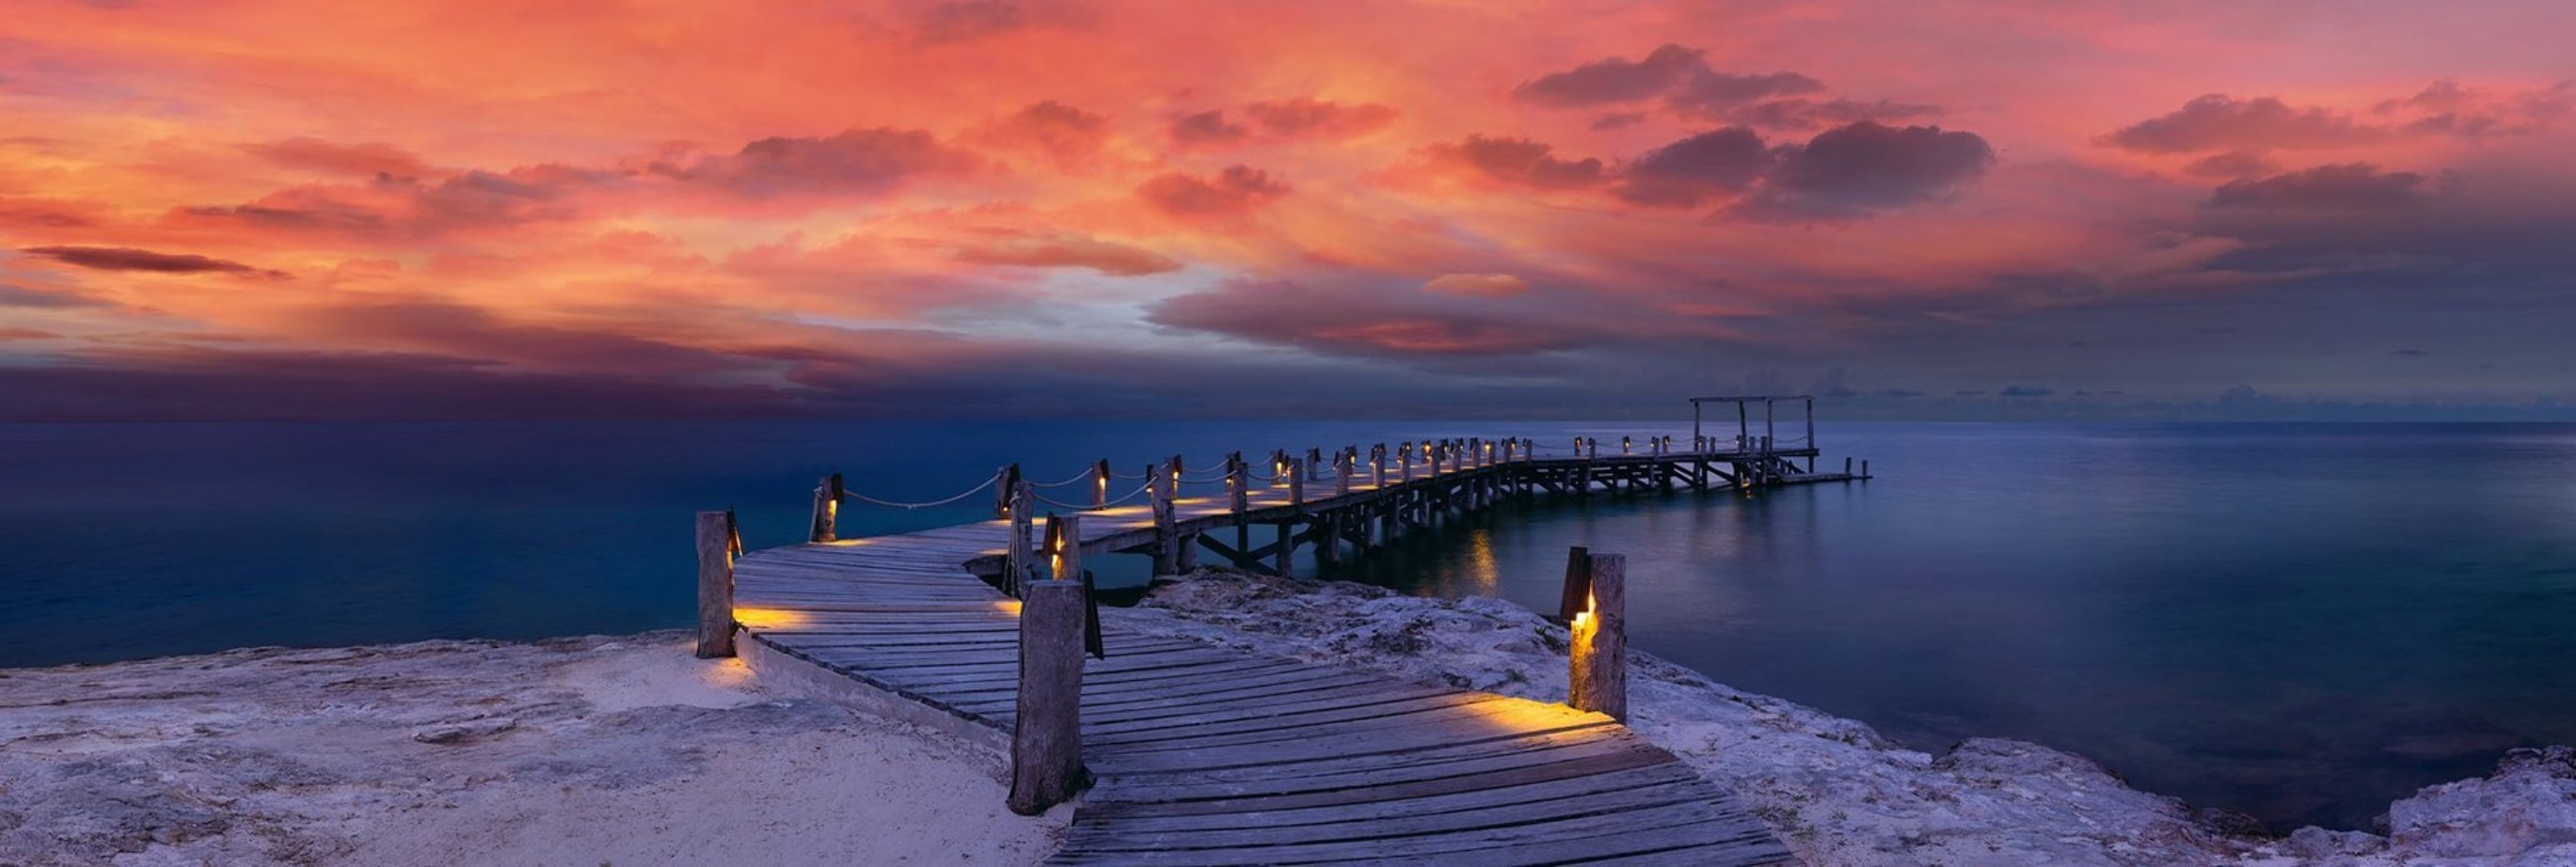 Enchanted Jetty 1.5M Huge! Panorama by Peter Lik